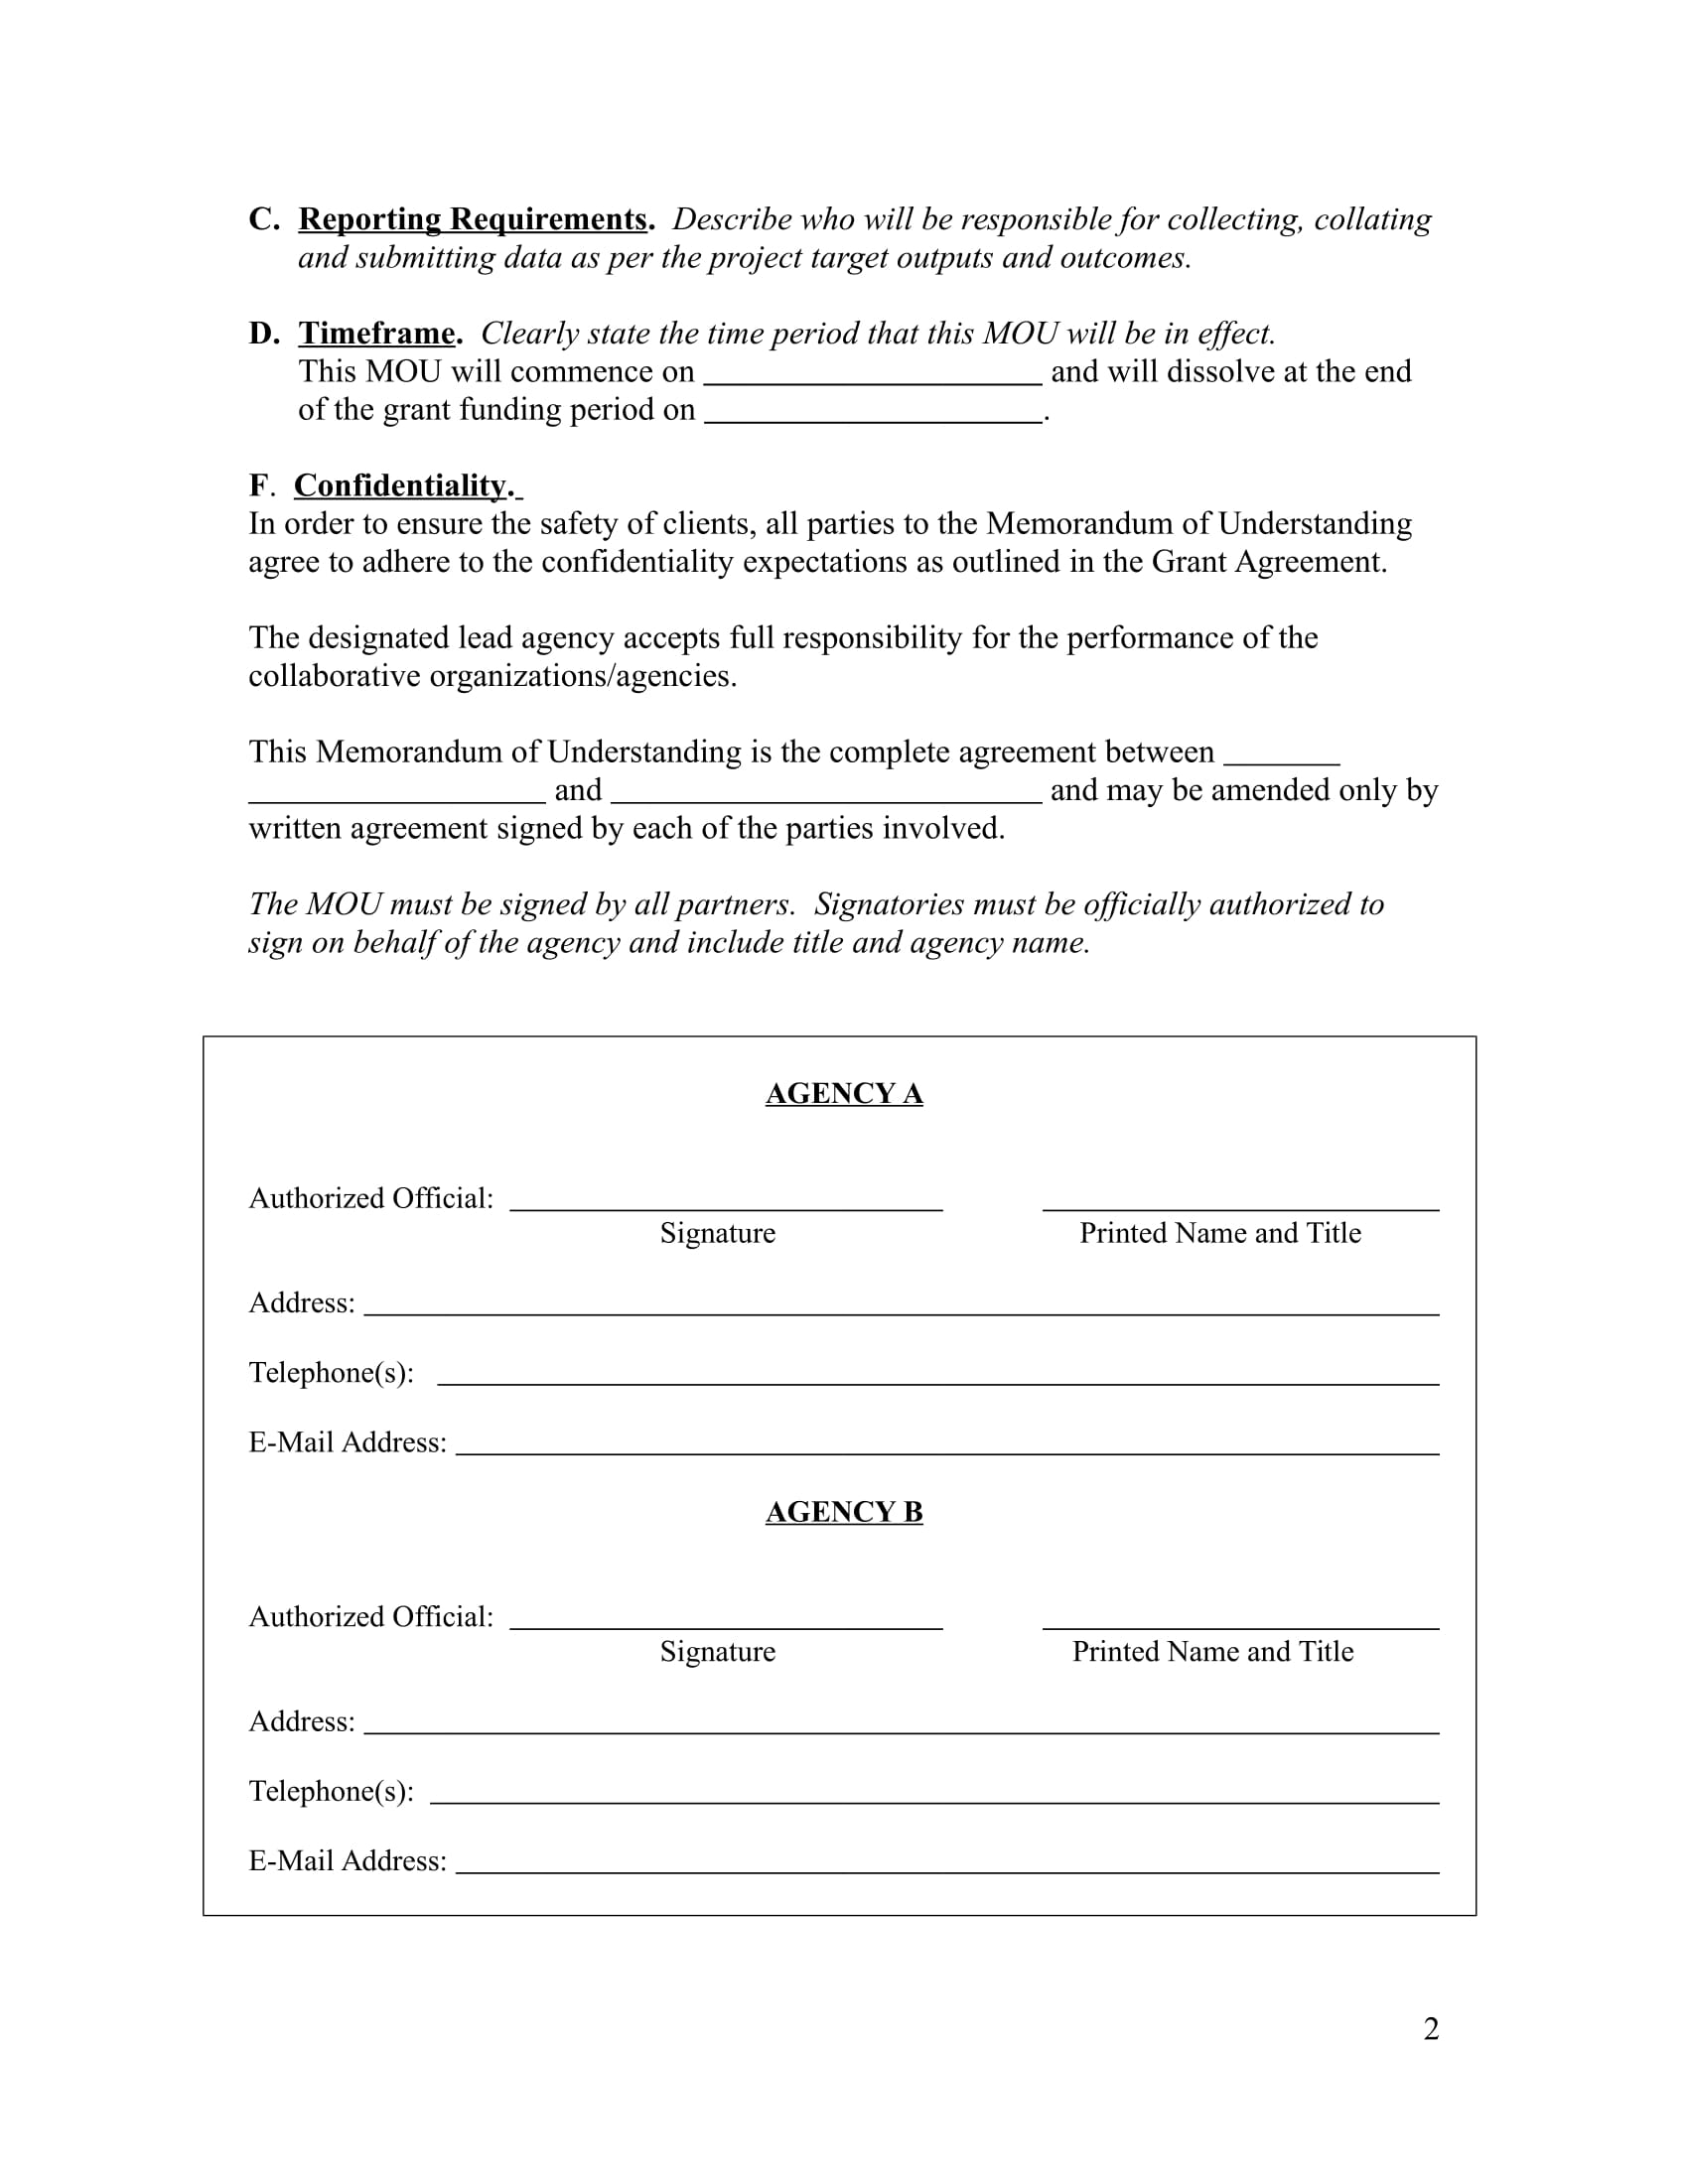 Memorandum download free business letter templates forms menus memorandum of understanding cheaphphosting